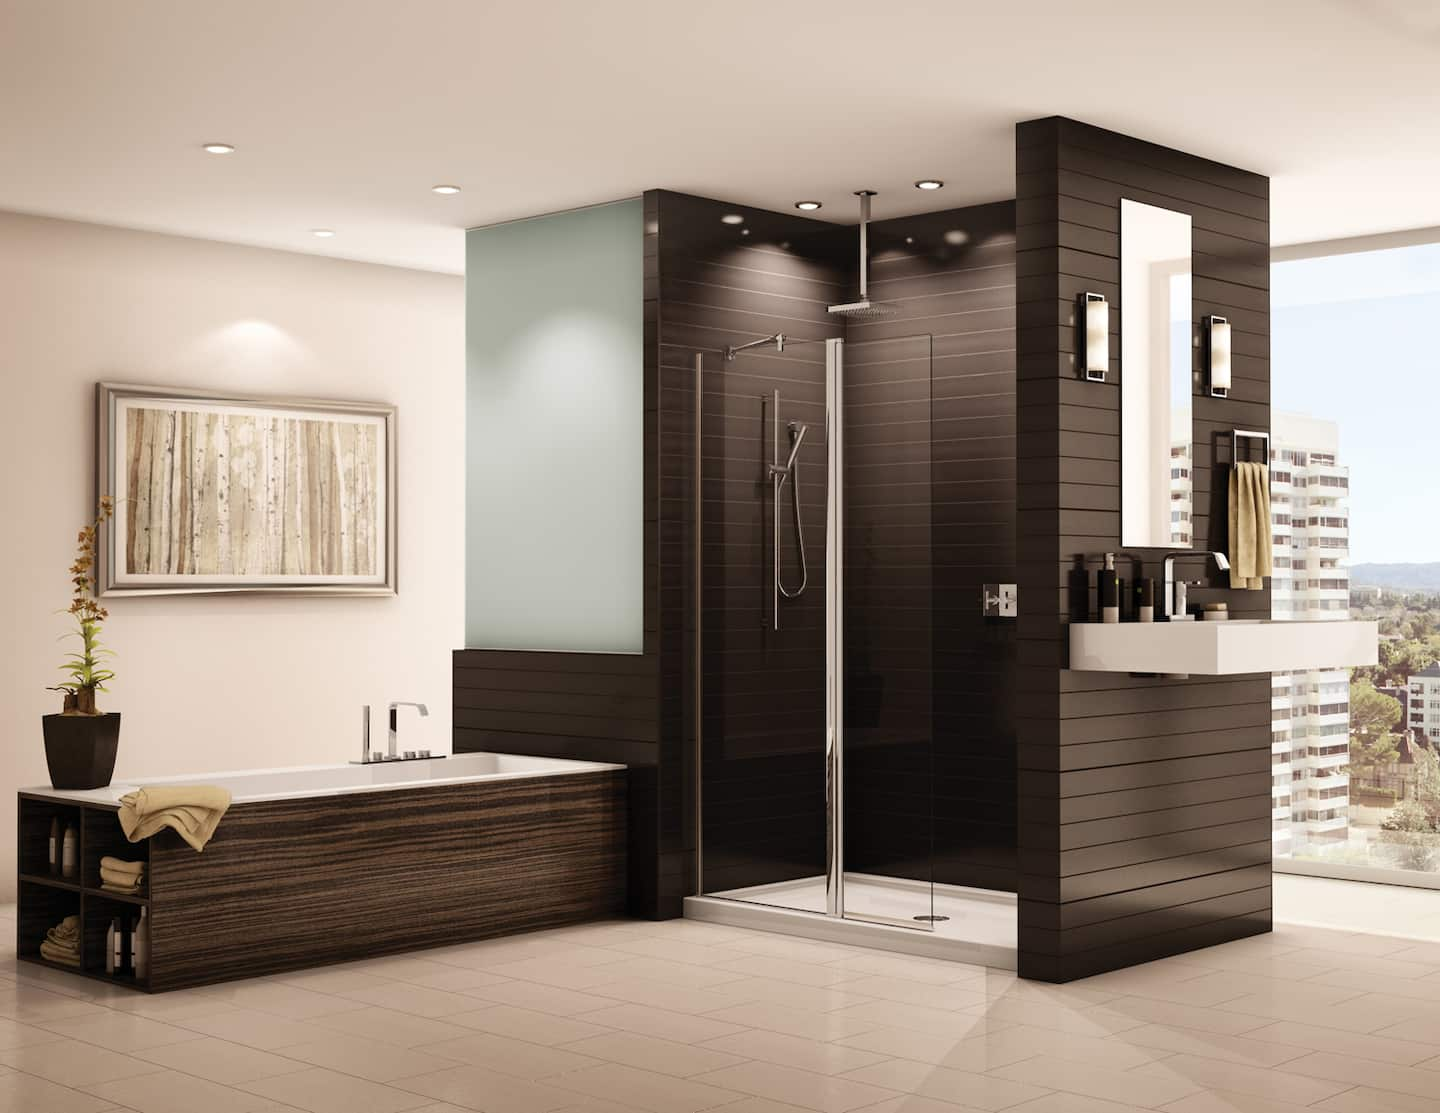 Pros And Cons For Acrylic Tub To Shower Conversion Angie S